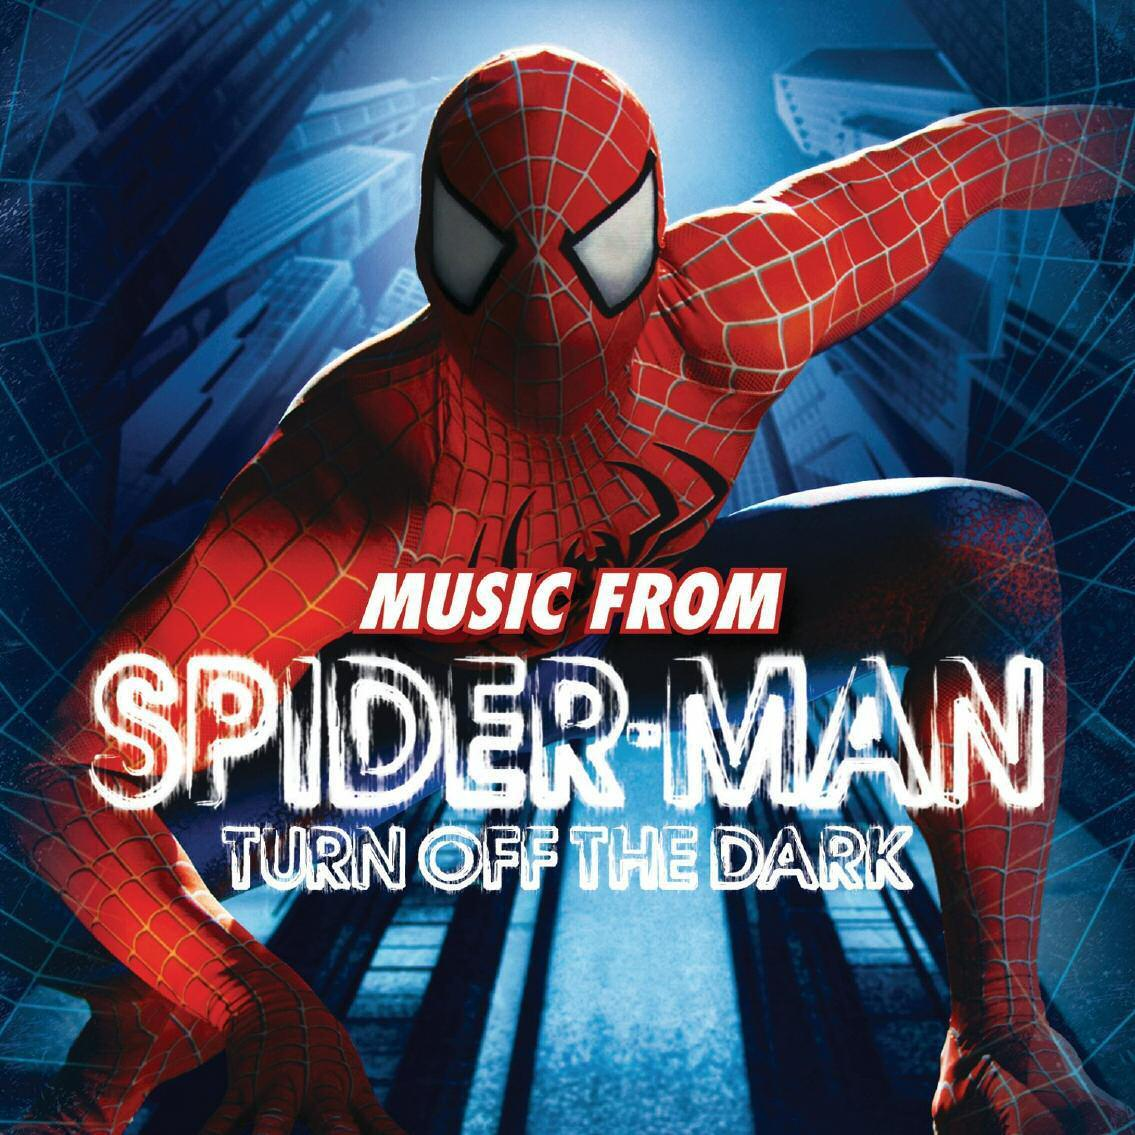 TURN OFF THE DARK - MUSIC FROM SPIDER MAN - CD -